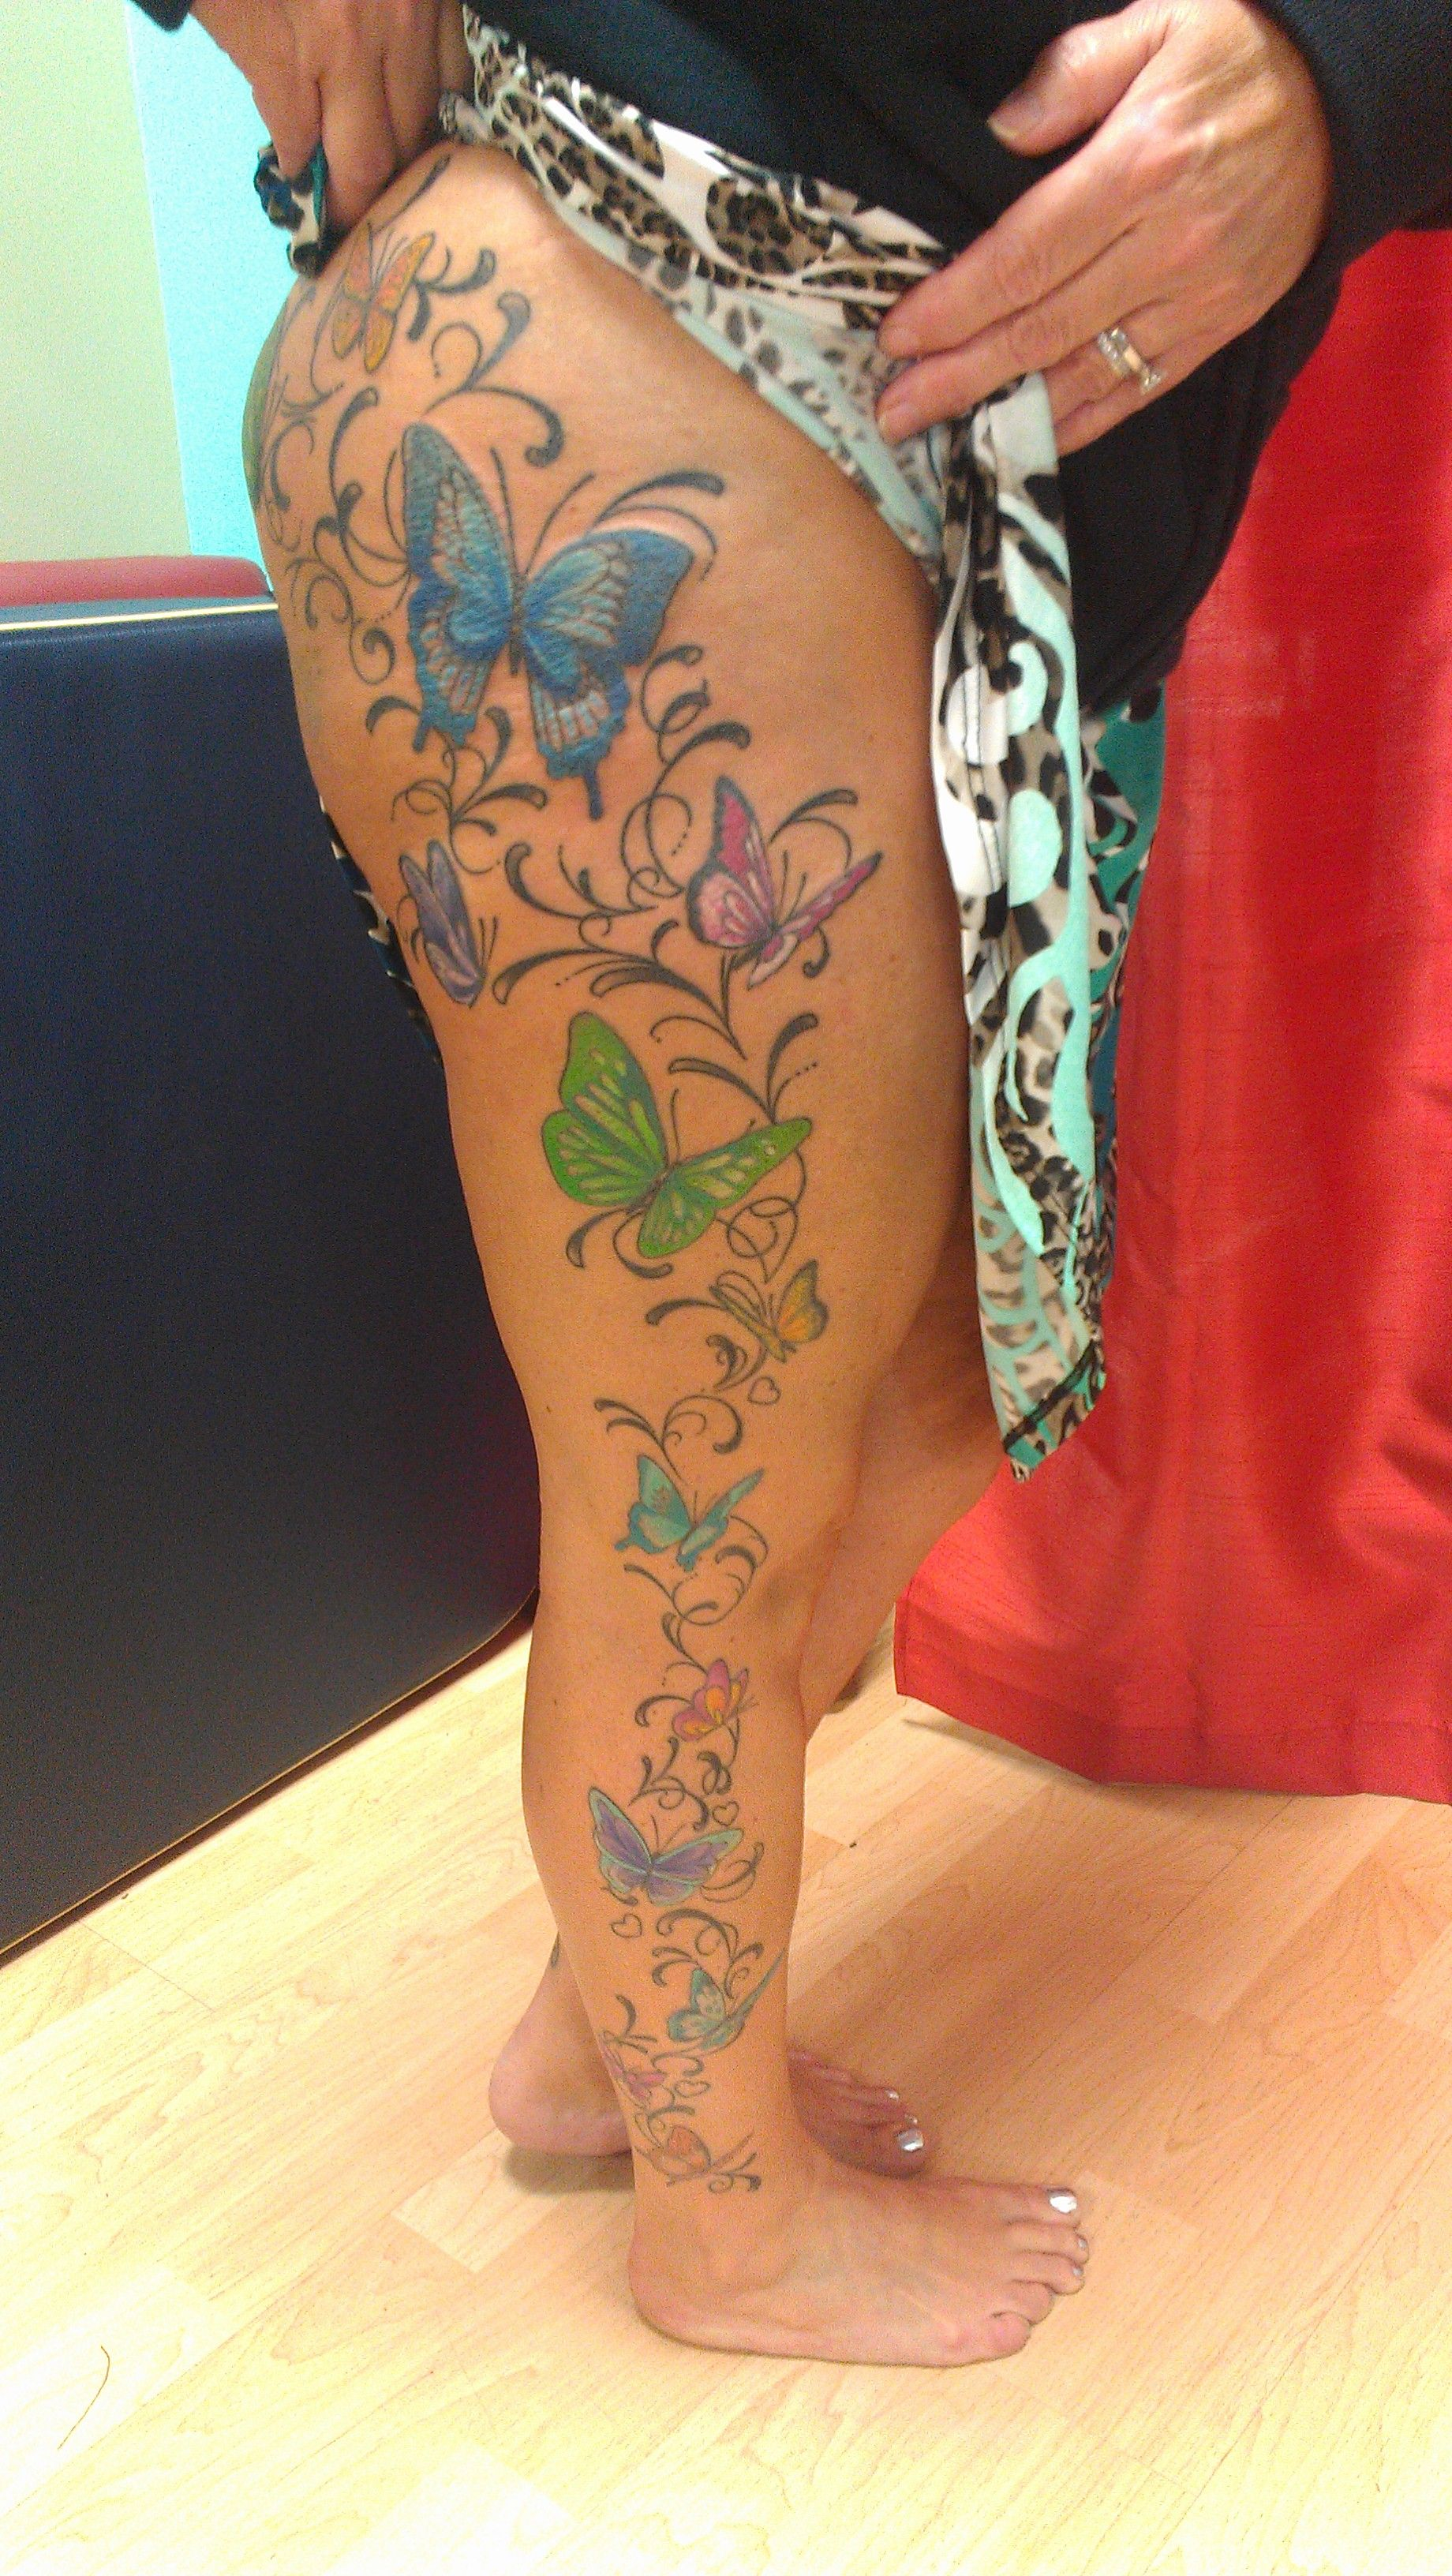 Pin By Brionnica Cousins On Suggested Tattoos Full Leg Tattoos Leg Tattoos Mom Tattoos